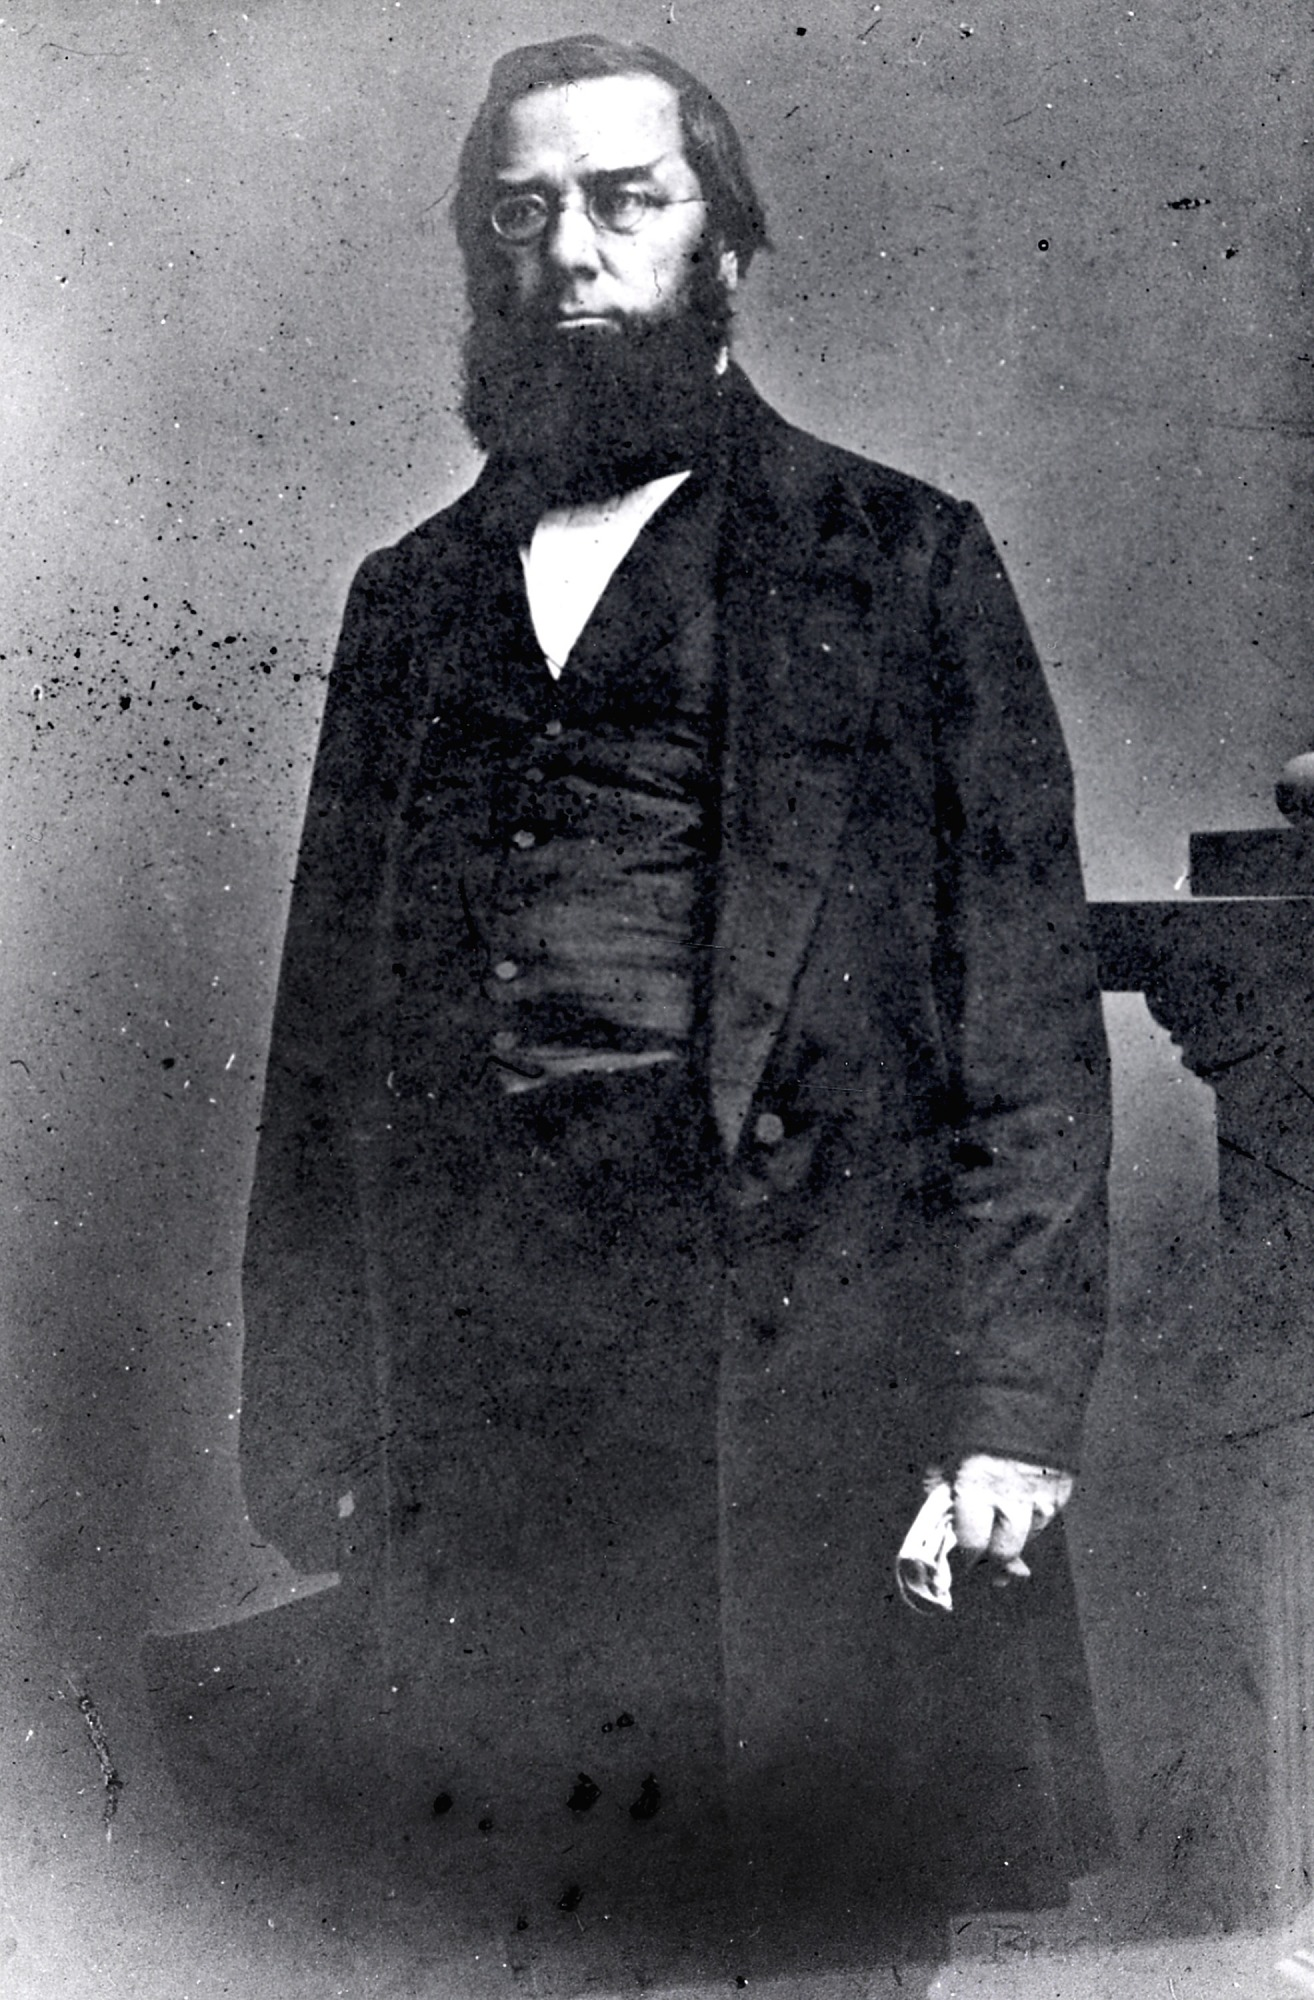 Portrait of Geoge Perkins Marsh, c. 1860. Smithsonian Institution Archives, negative number 2002-32243.